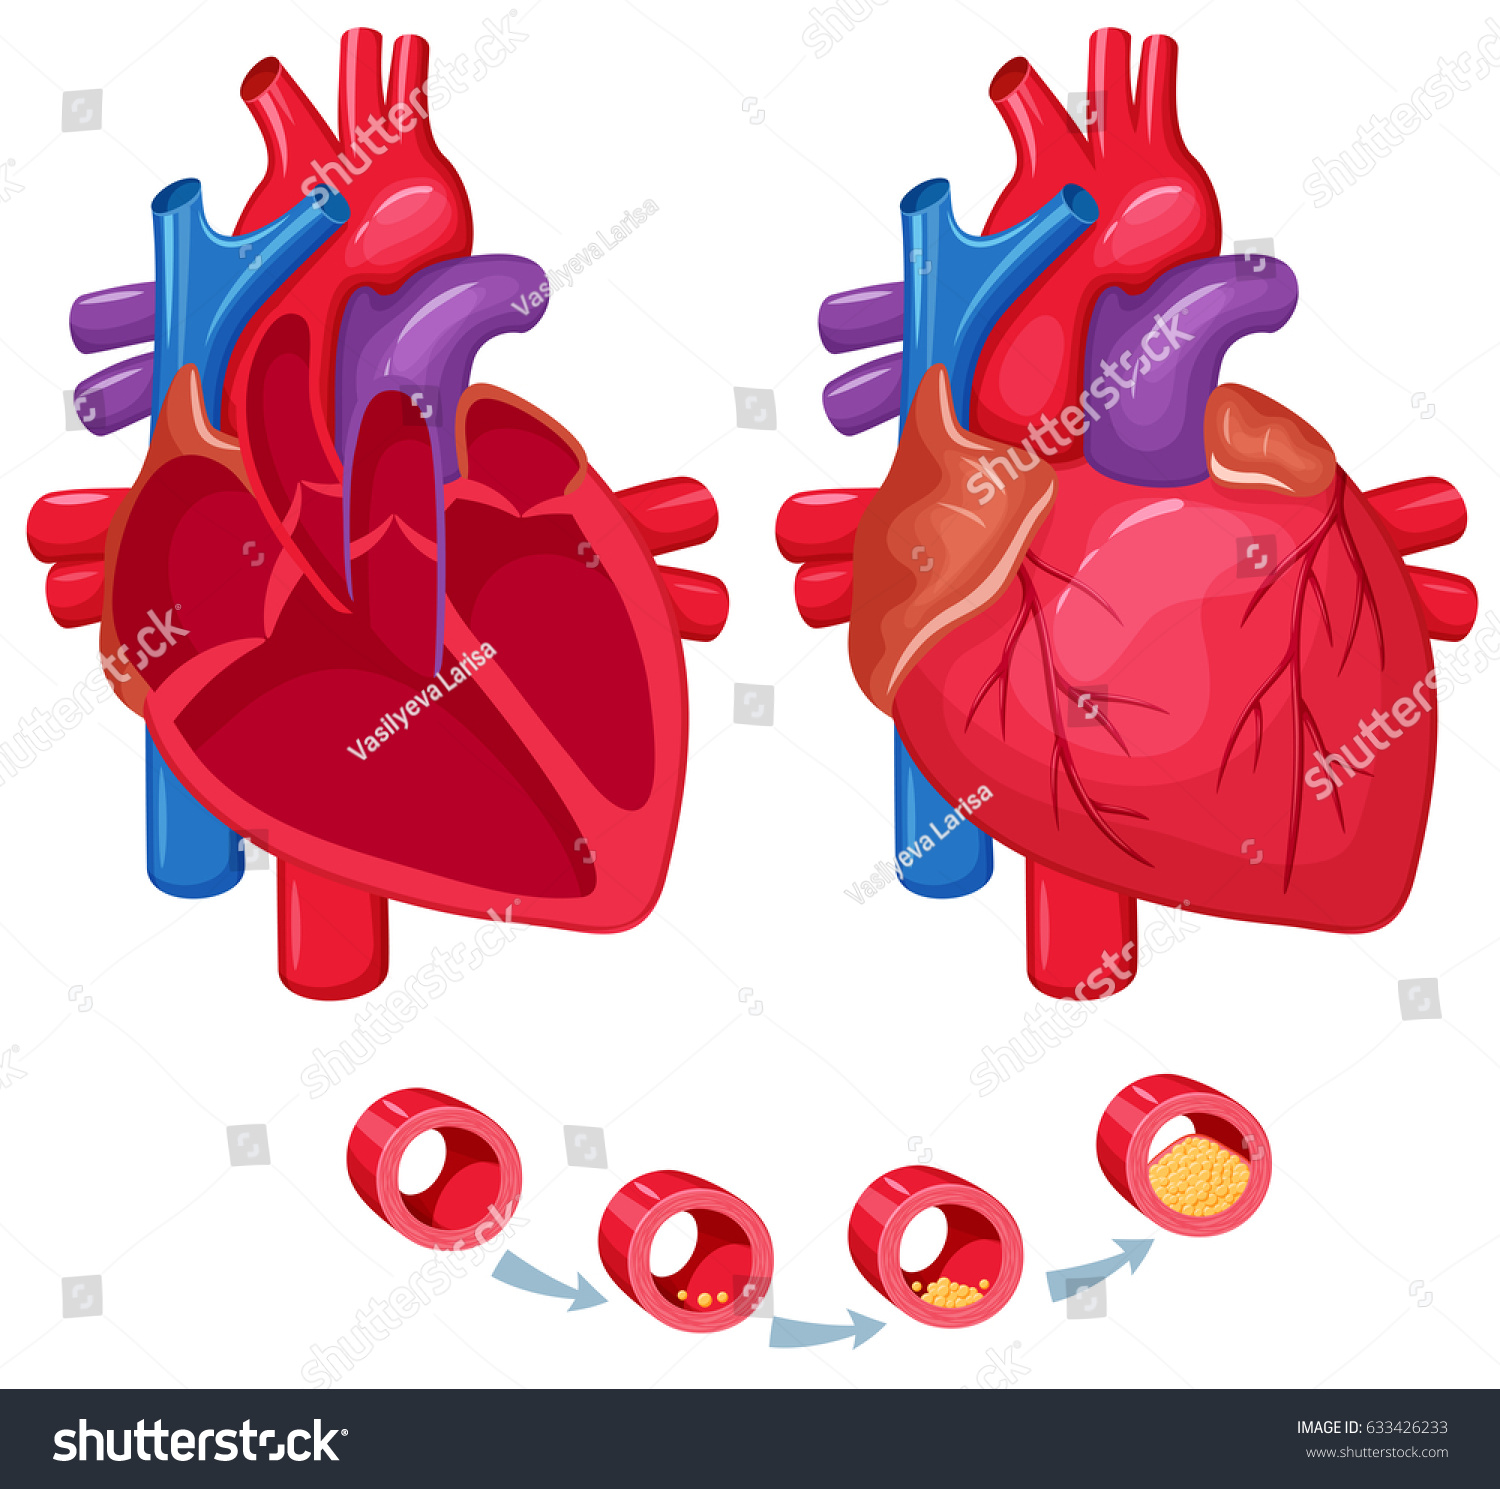 Human Heart Anatomy Medical Science Vector Stock Illustration ...